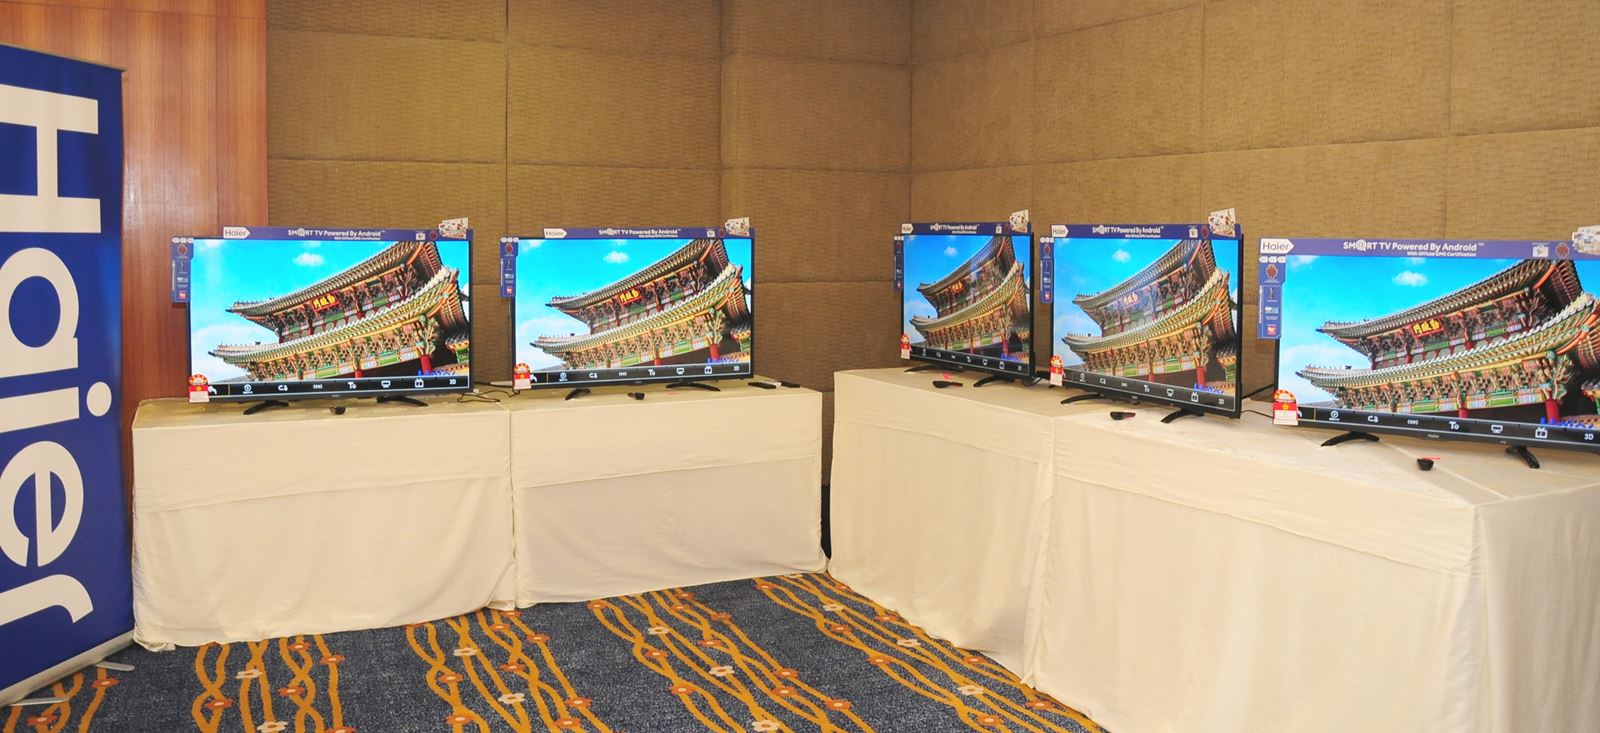 Haier launches U5000 Smart TV for Malaysian homes